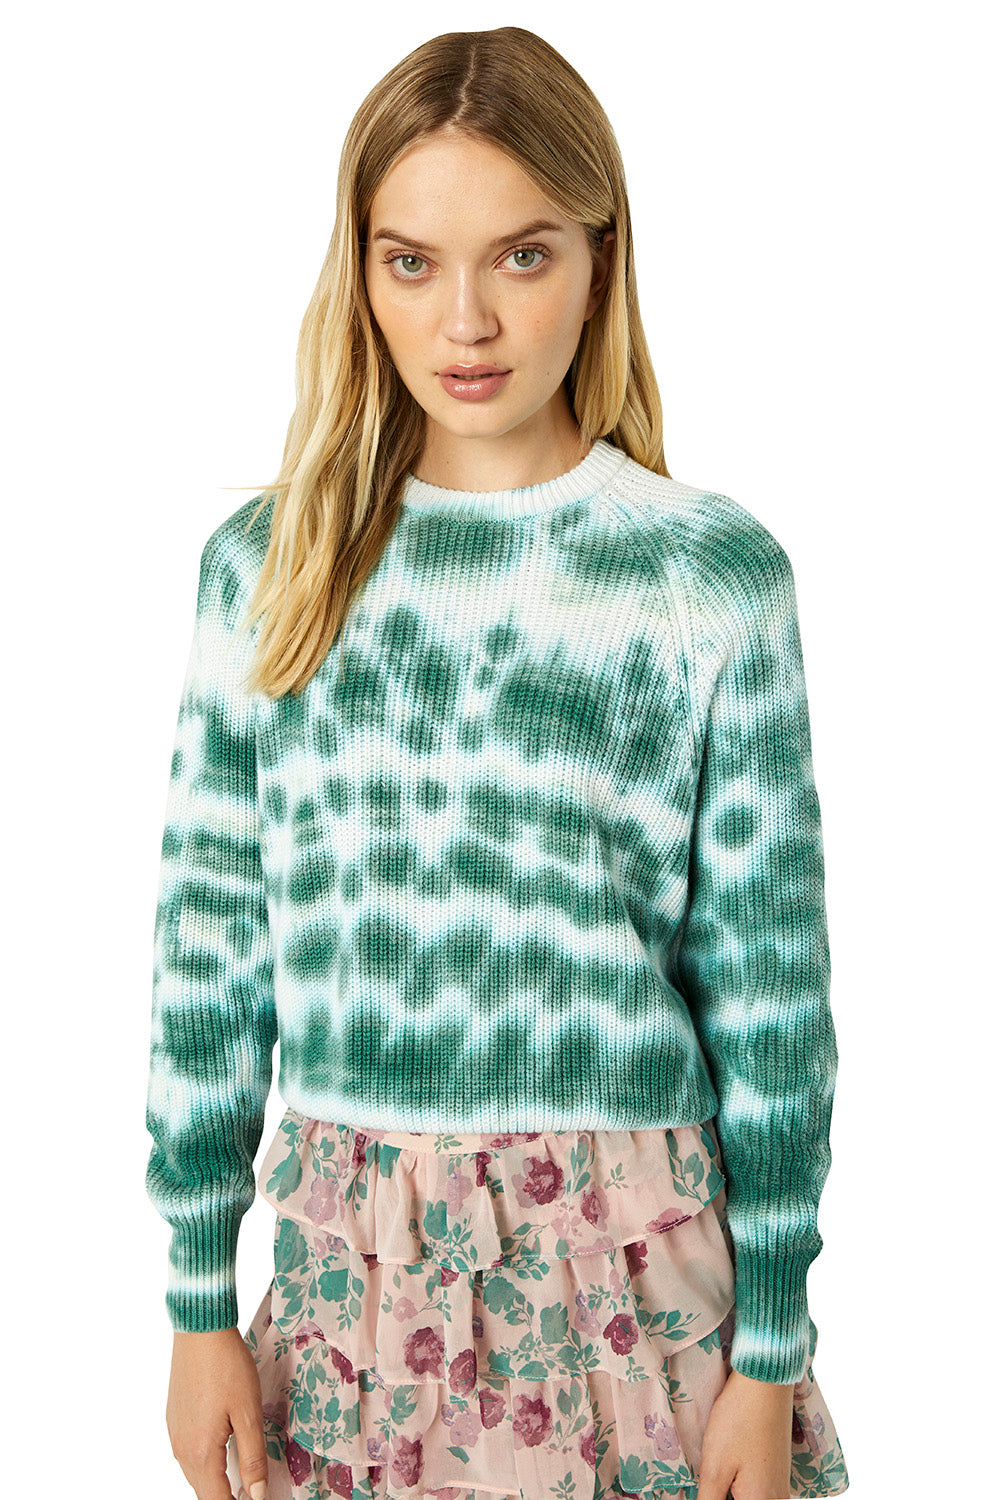 SHAY TIE-DYE SWEATER - MISA Los Angeles